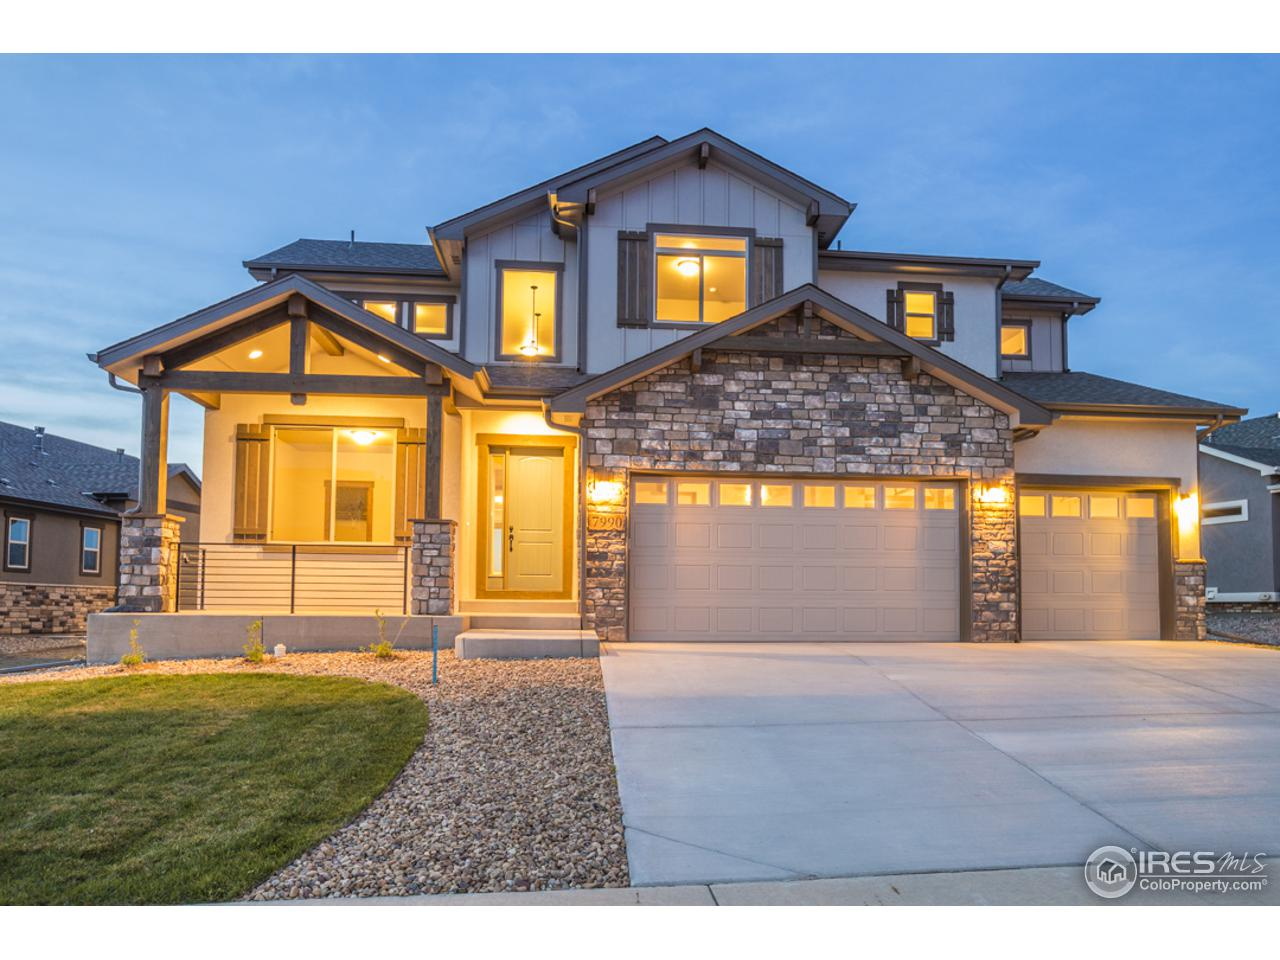 7990 Cherry Blossom Dr, Windsor, CO 80550